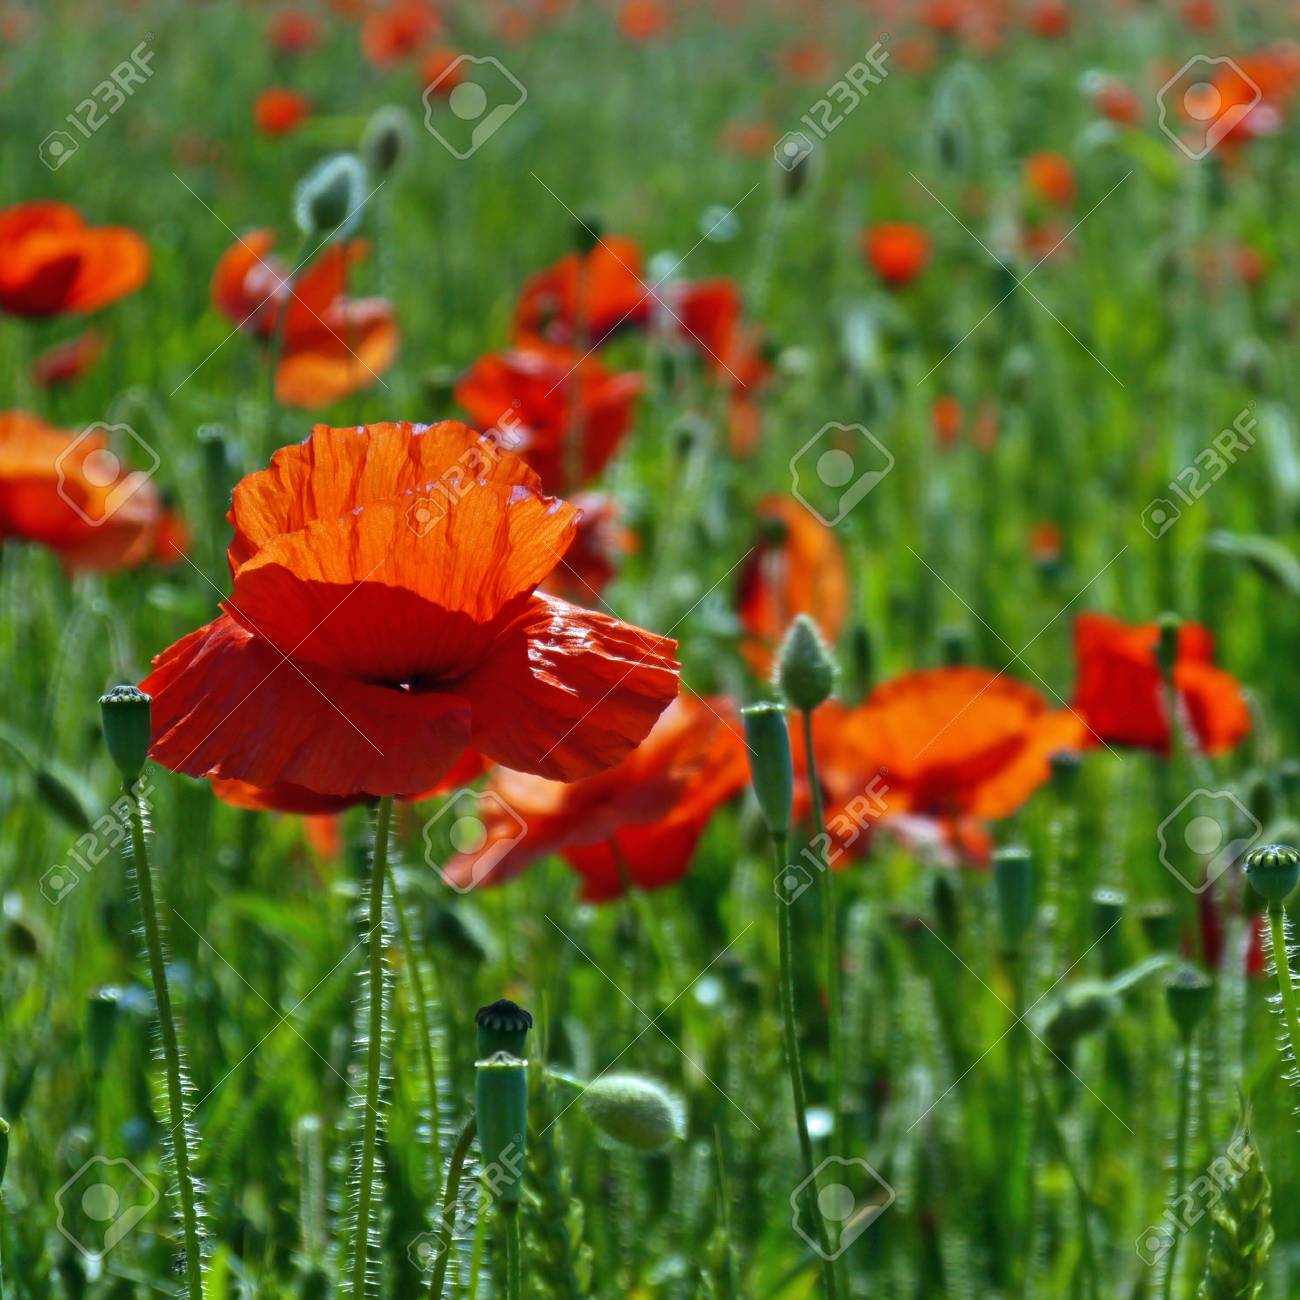 A meadow full of poppies and grasses in rural English countryside Standard-Bild - 81777949